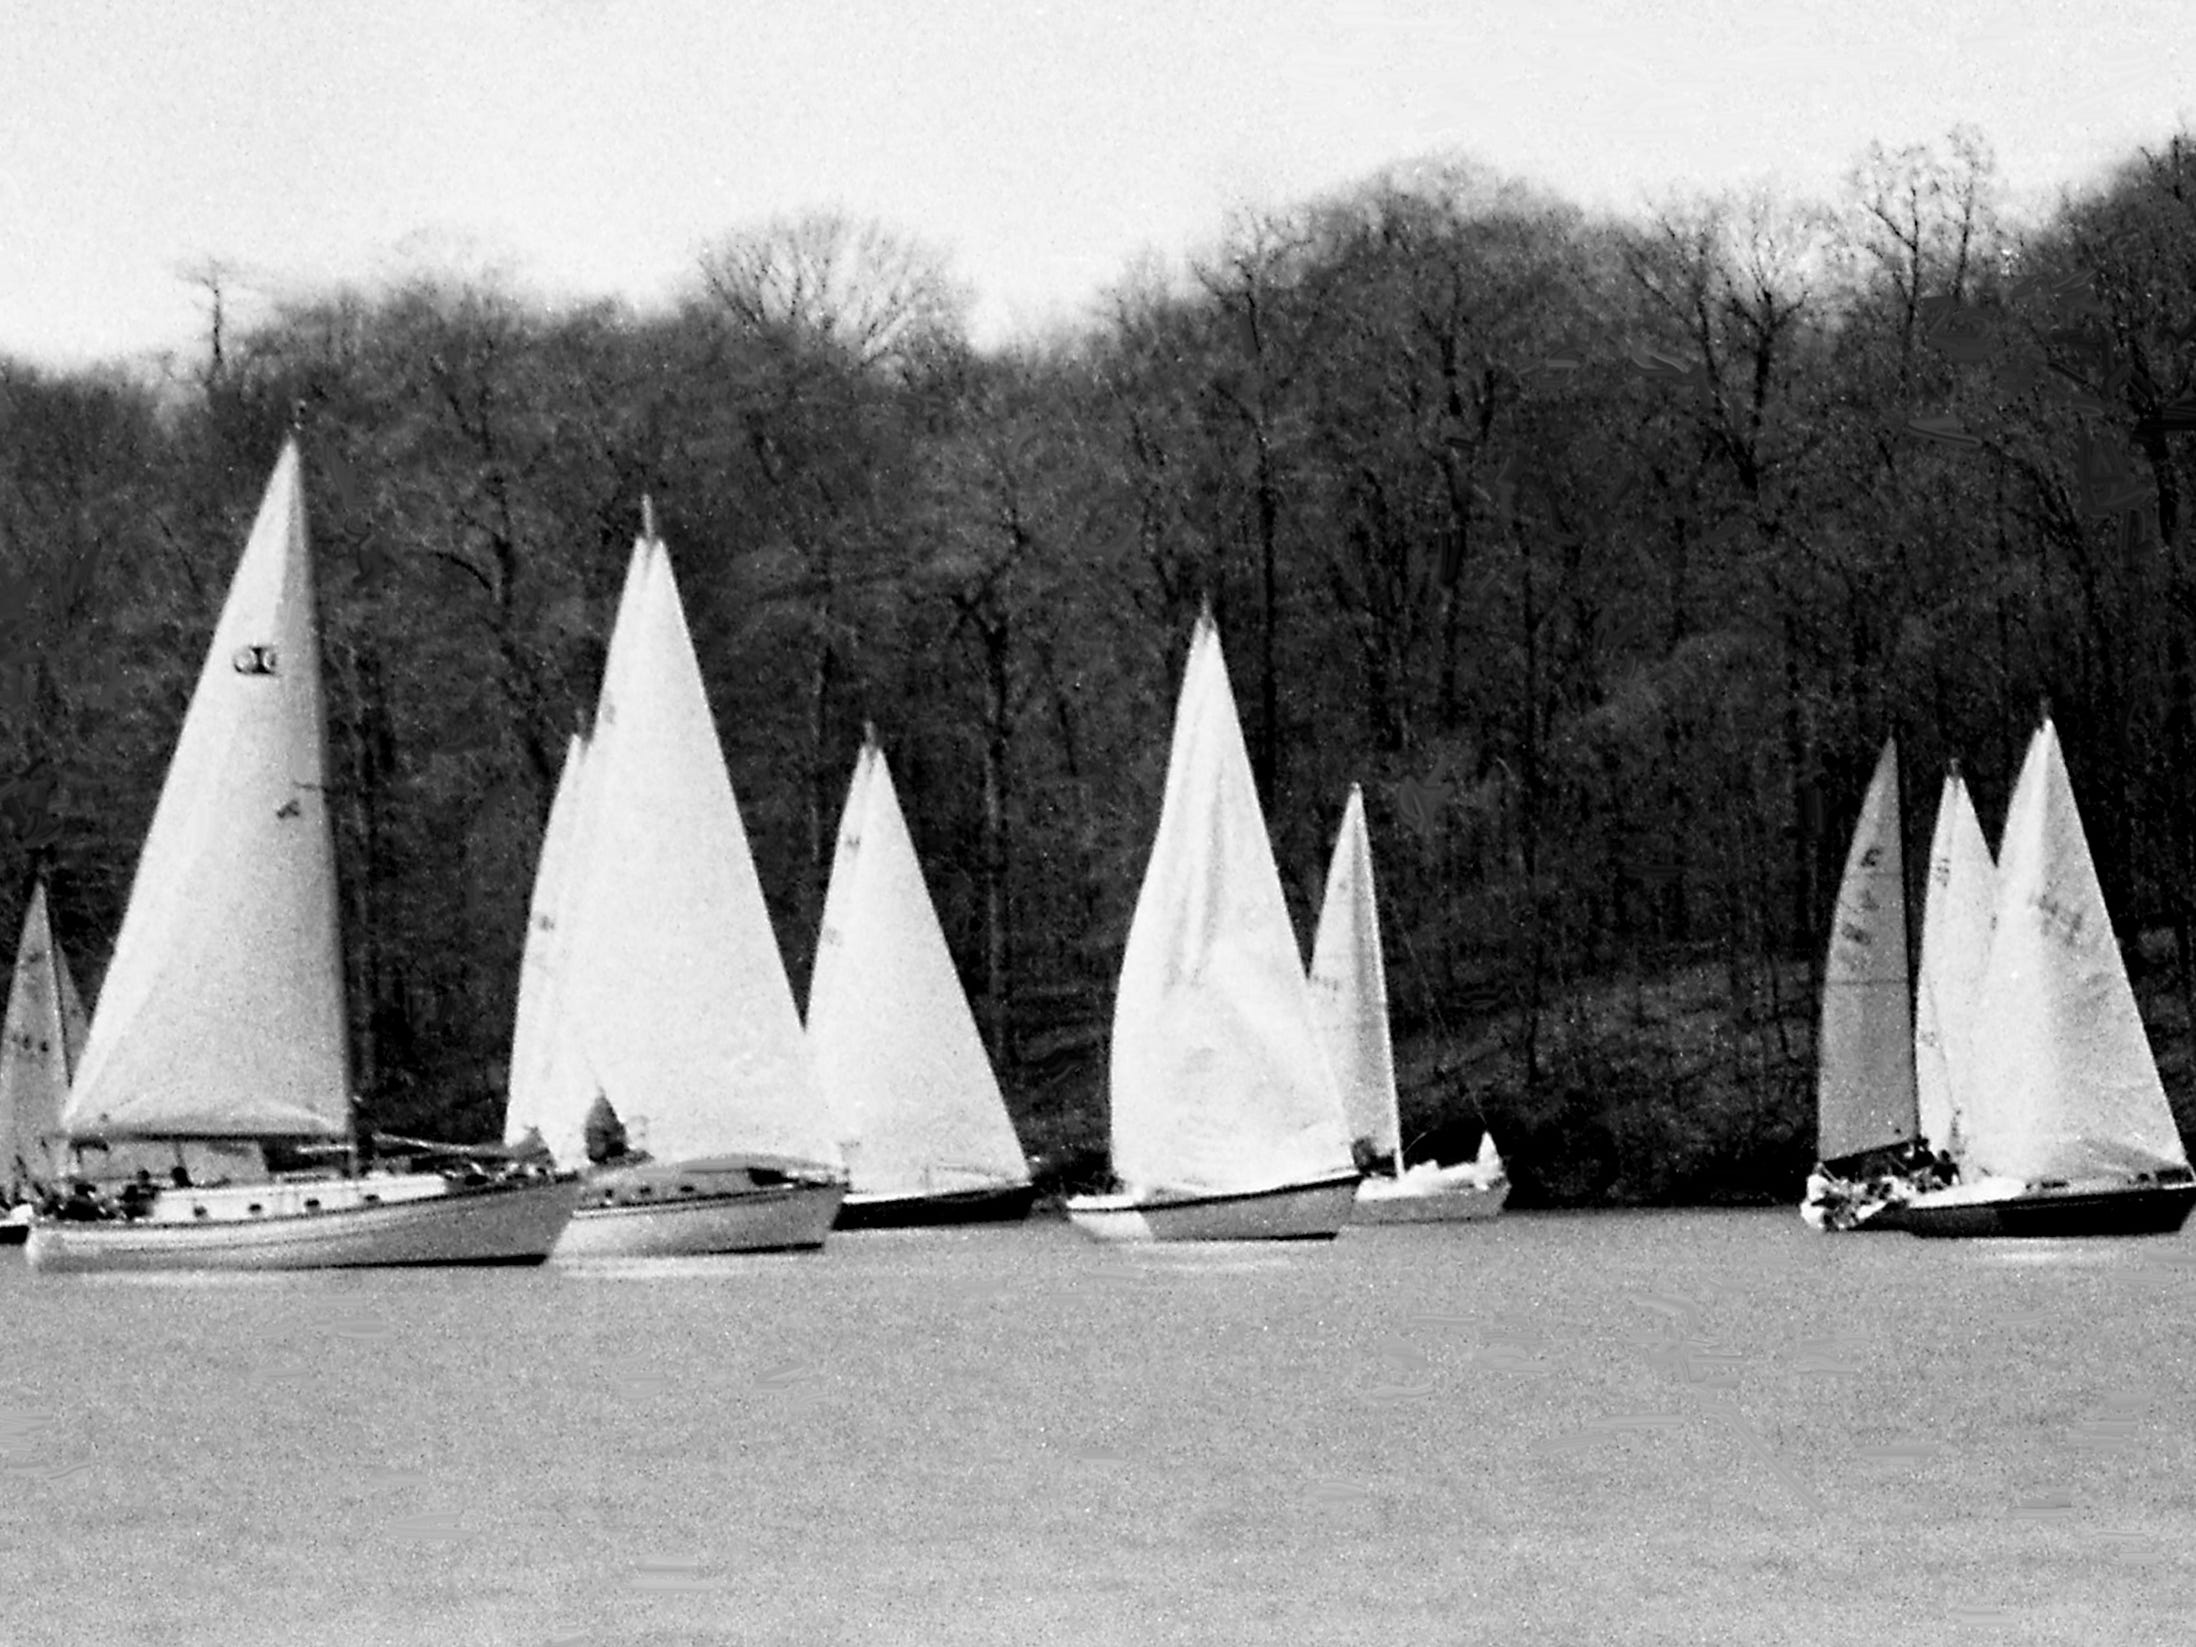 These boats set sail with high hopes on their way to the race course April 7, 1979, to compete in the 26th annual Tennessean Regatta. They eventually ran out of steam – air, rather – and never got to start the race. It marked the first cancellation ever. The two-day regatta will condense into a one-day event and try again the next day.